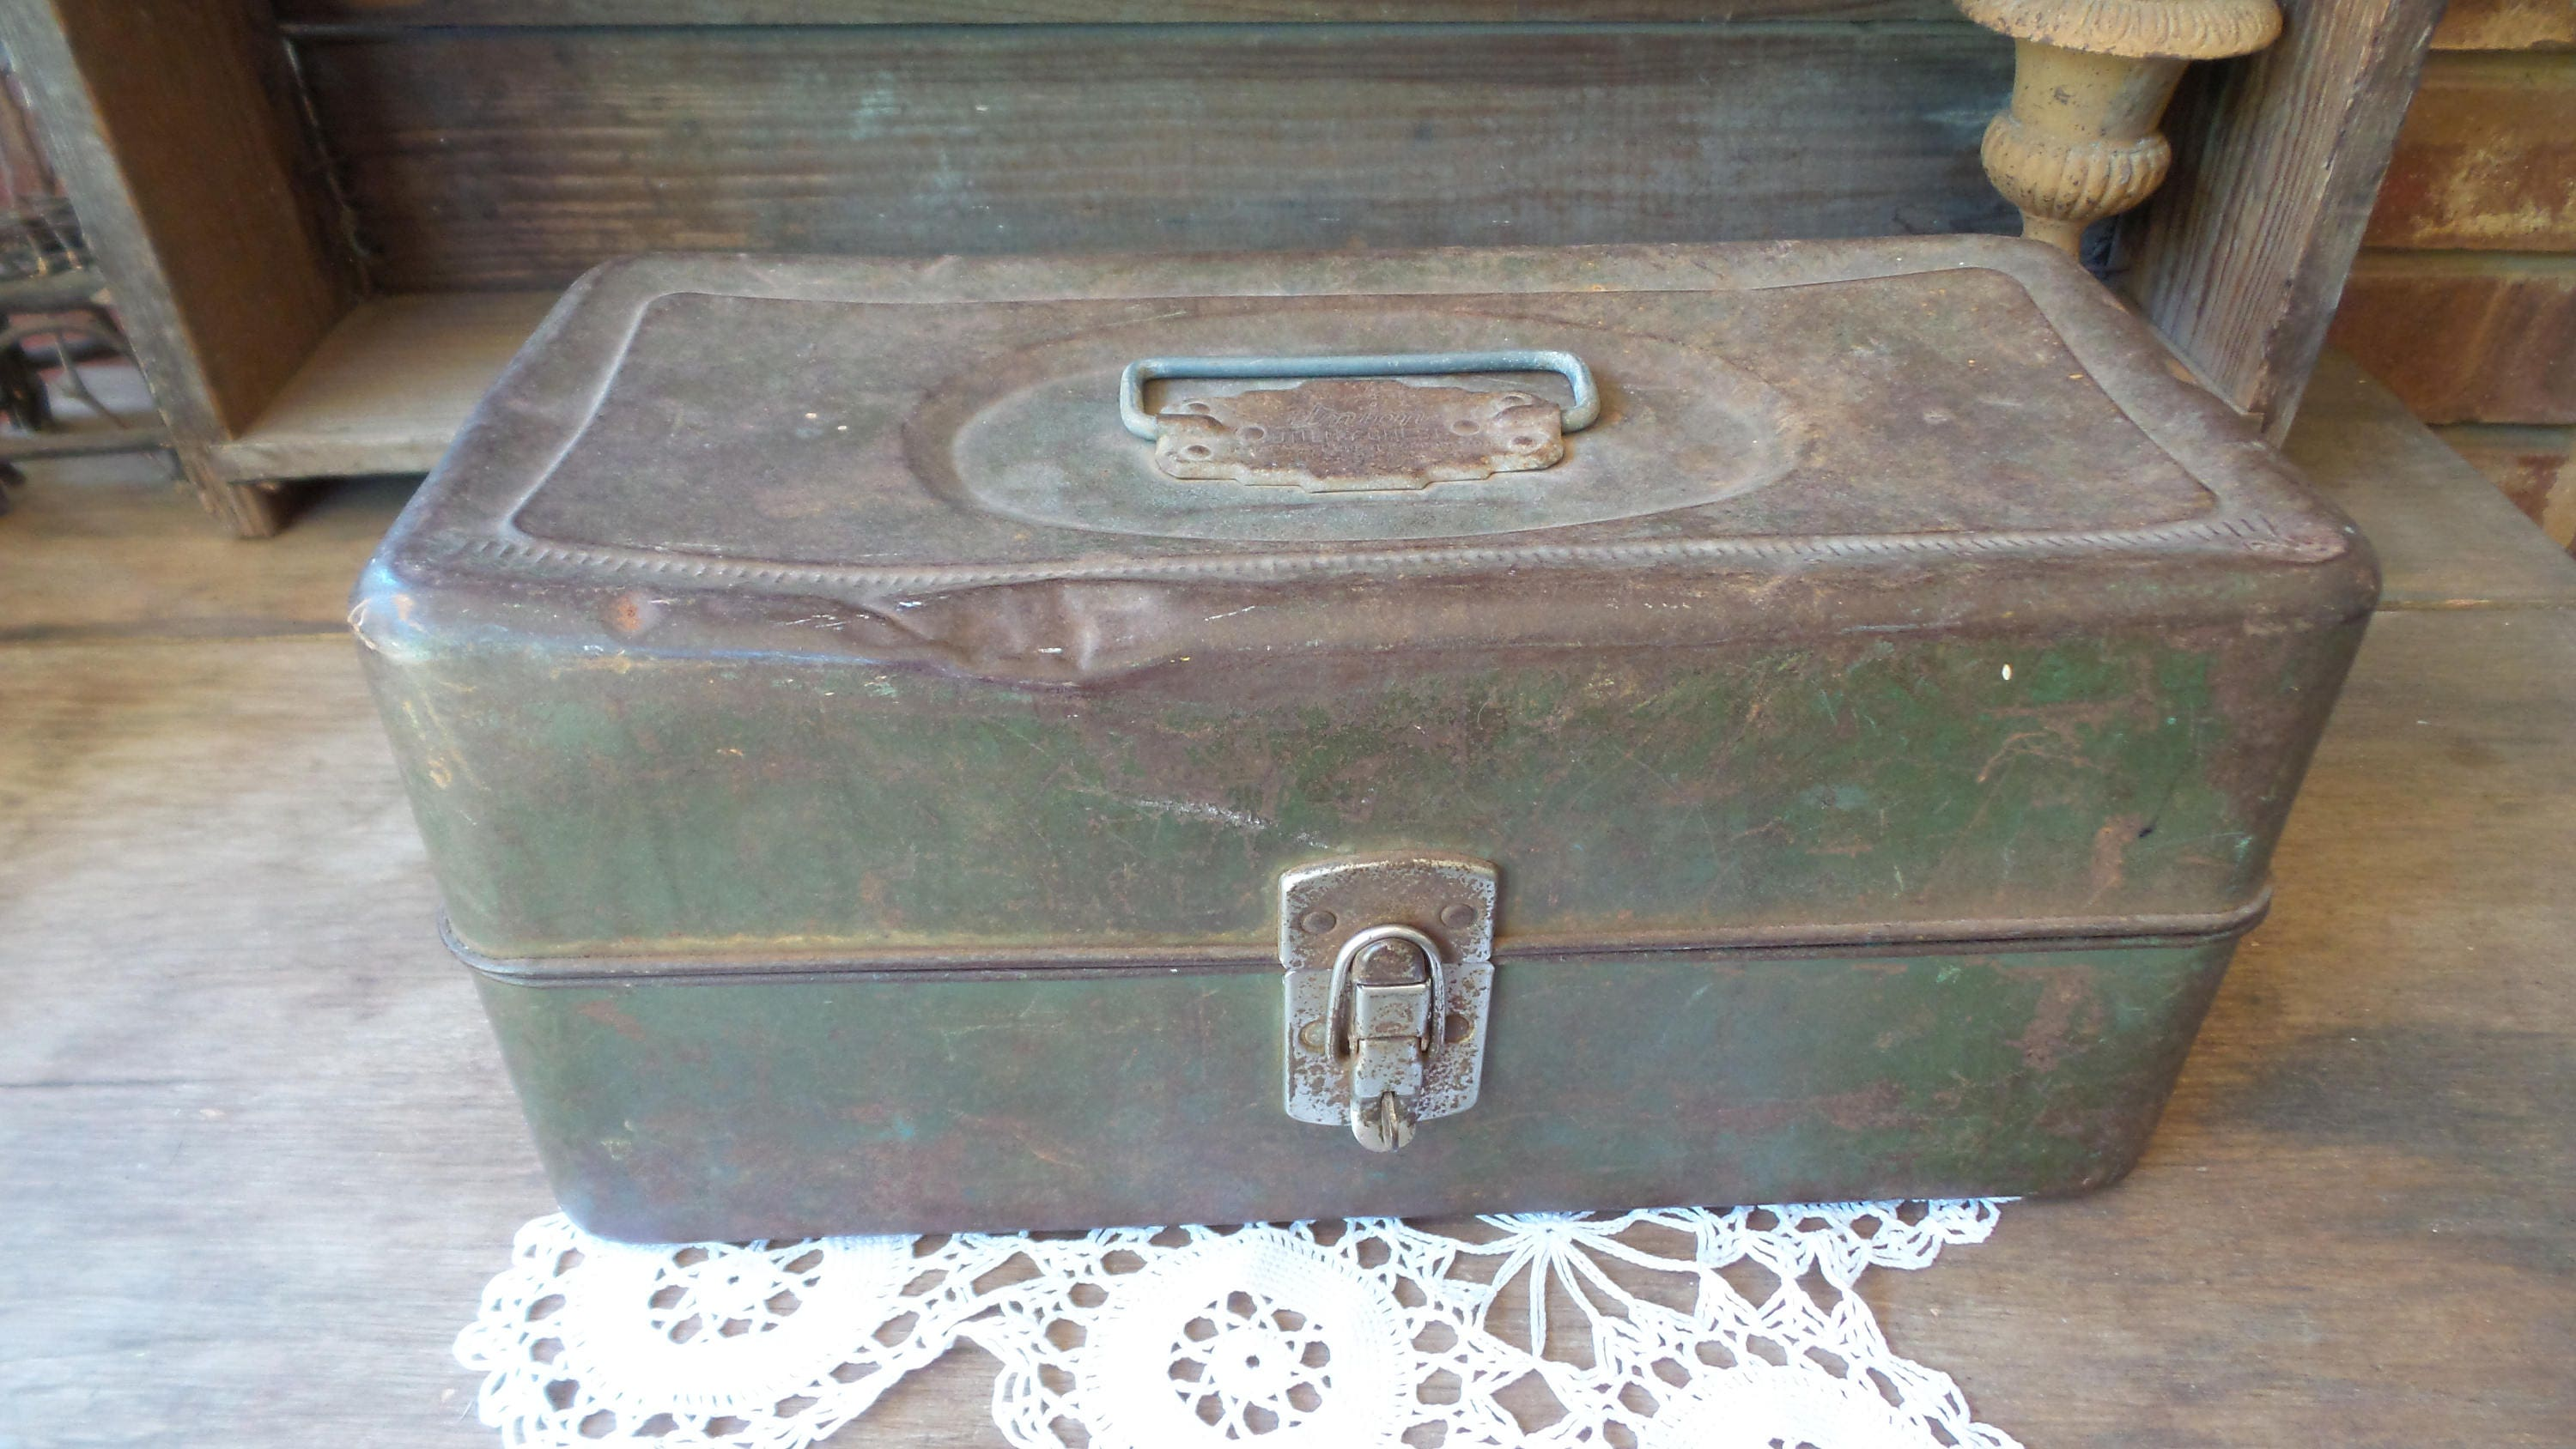 Fishing tackle craft supplies -  Vintage Craft Supply Organizer Sold By Pixiegoes2market